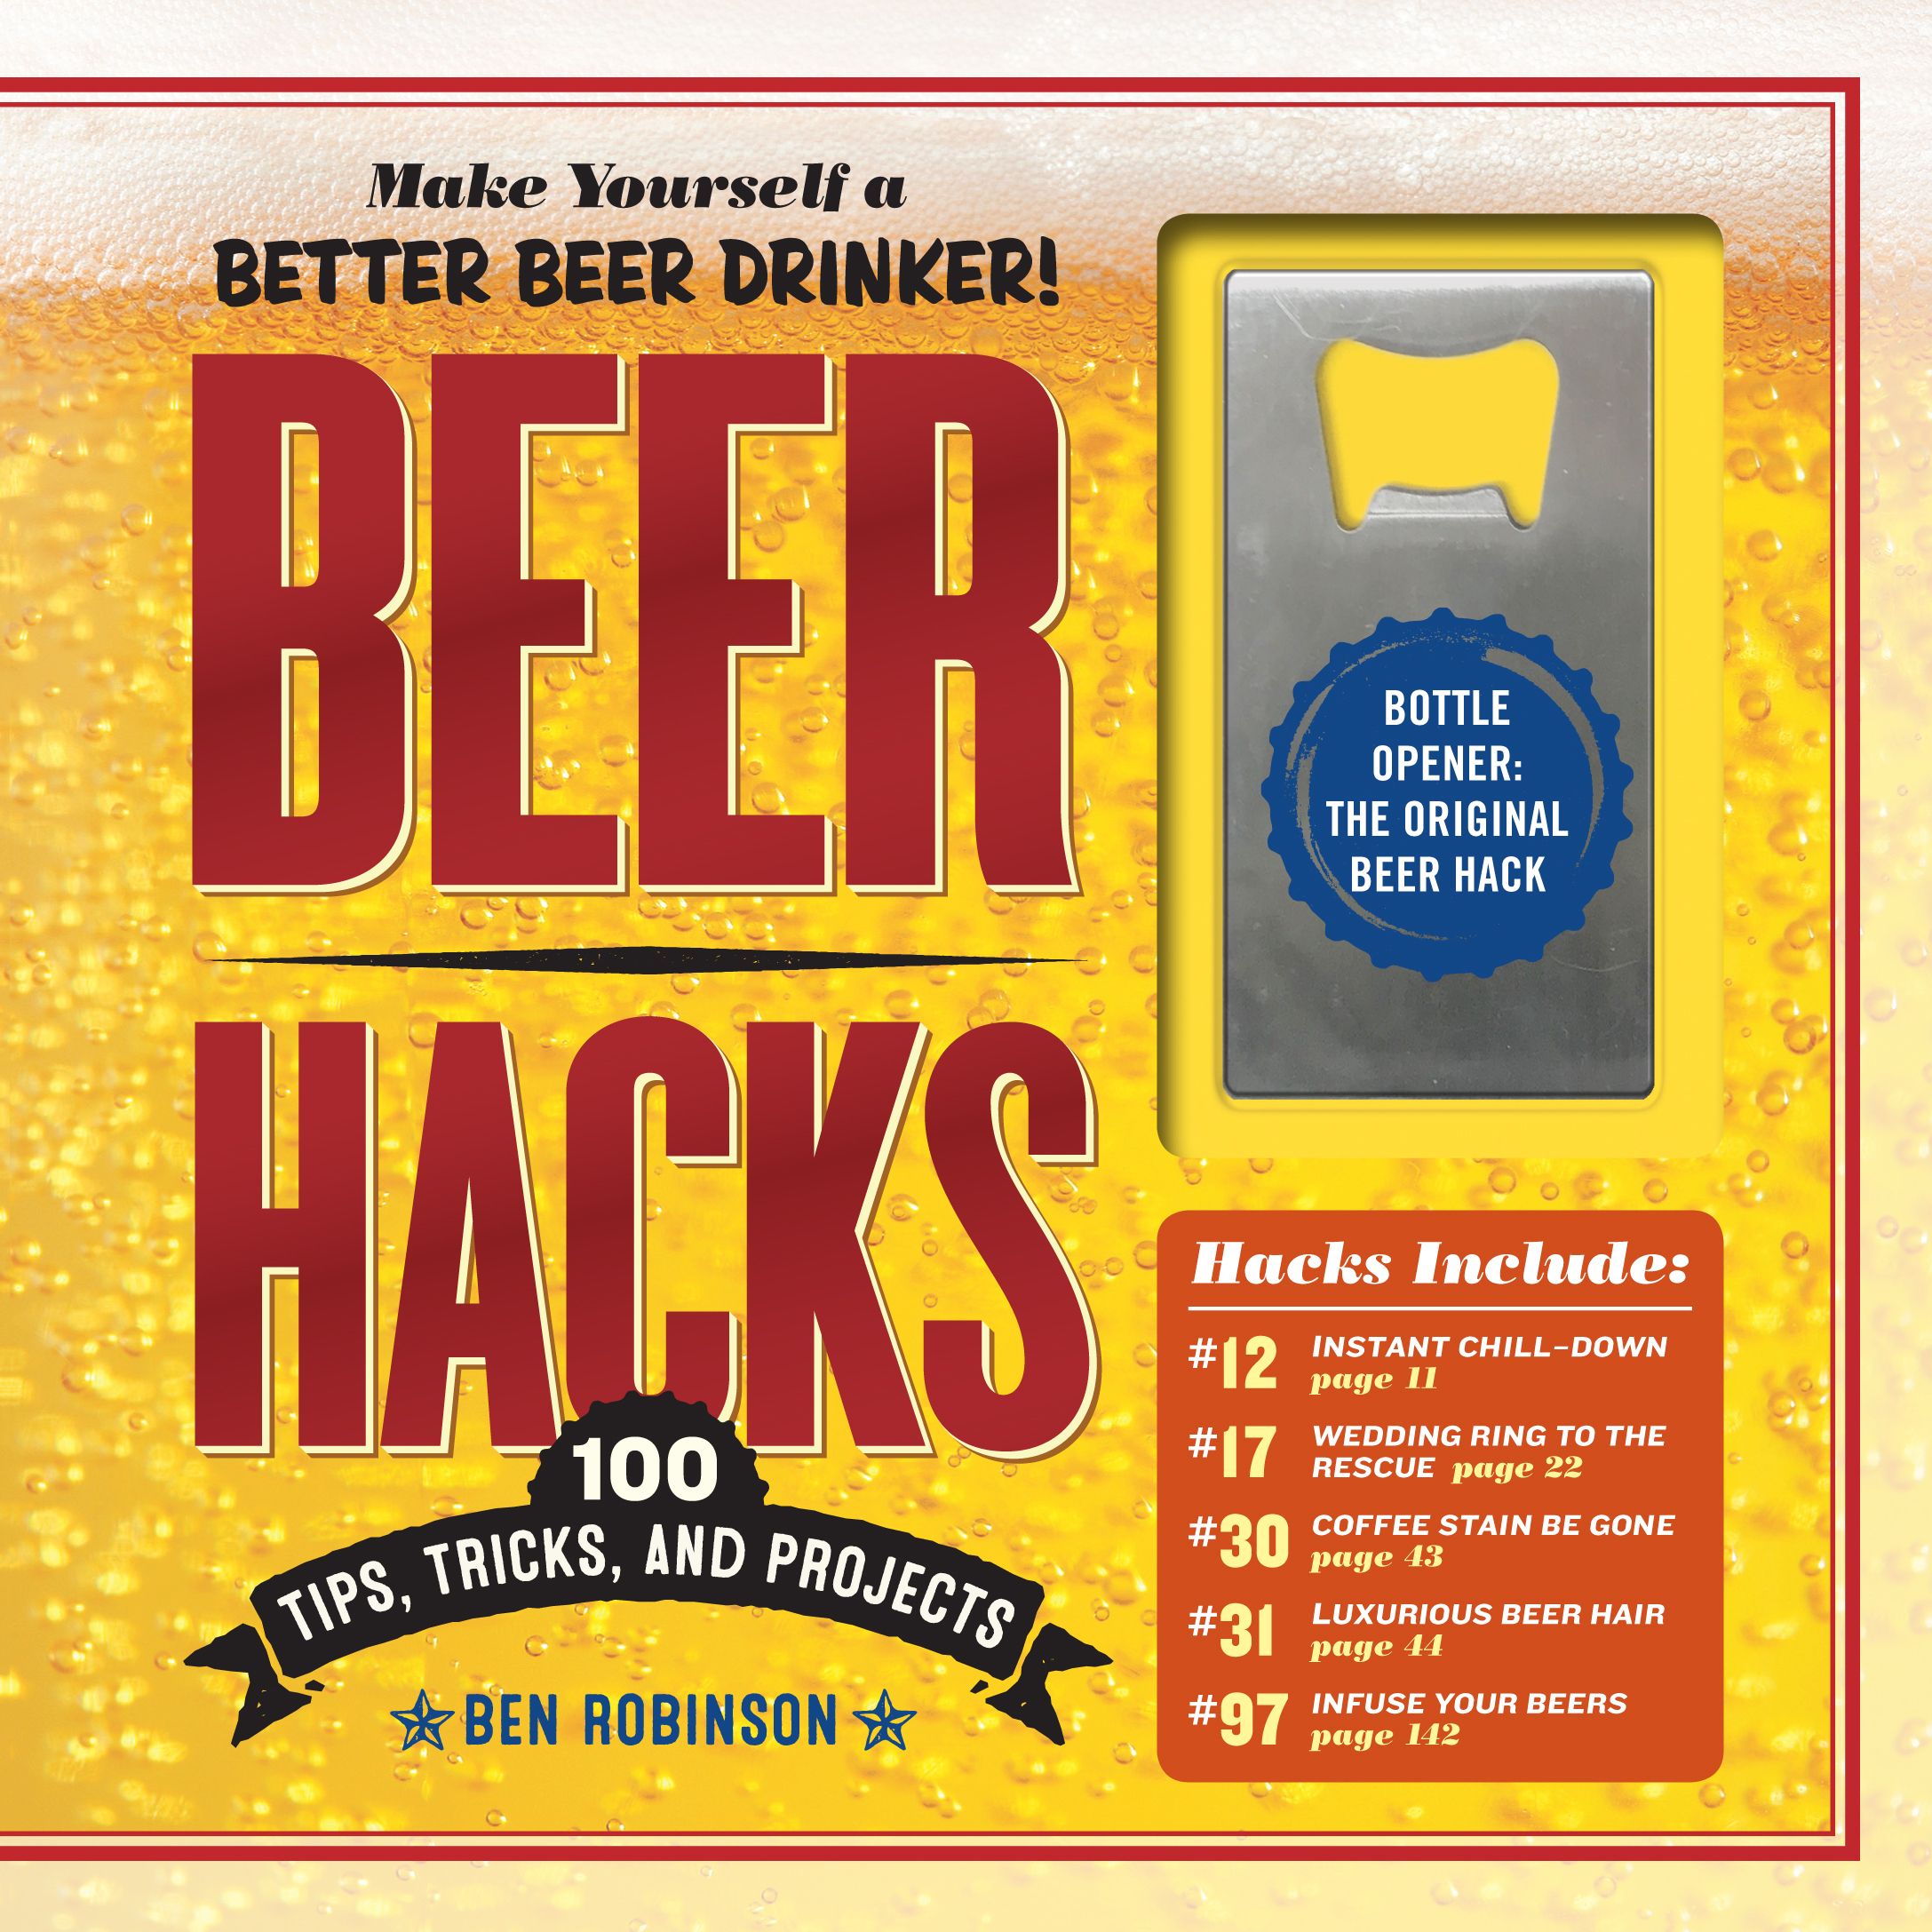 Beer lovers, listen up: New book has some life hacks for you